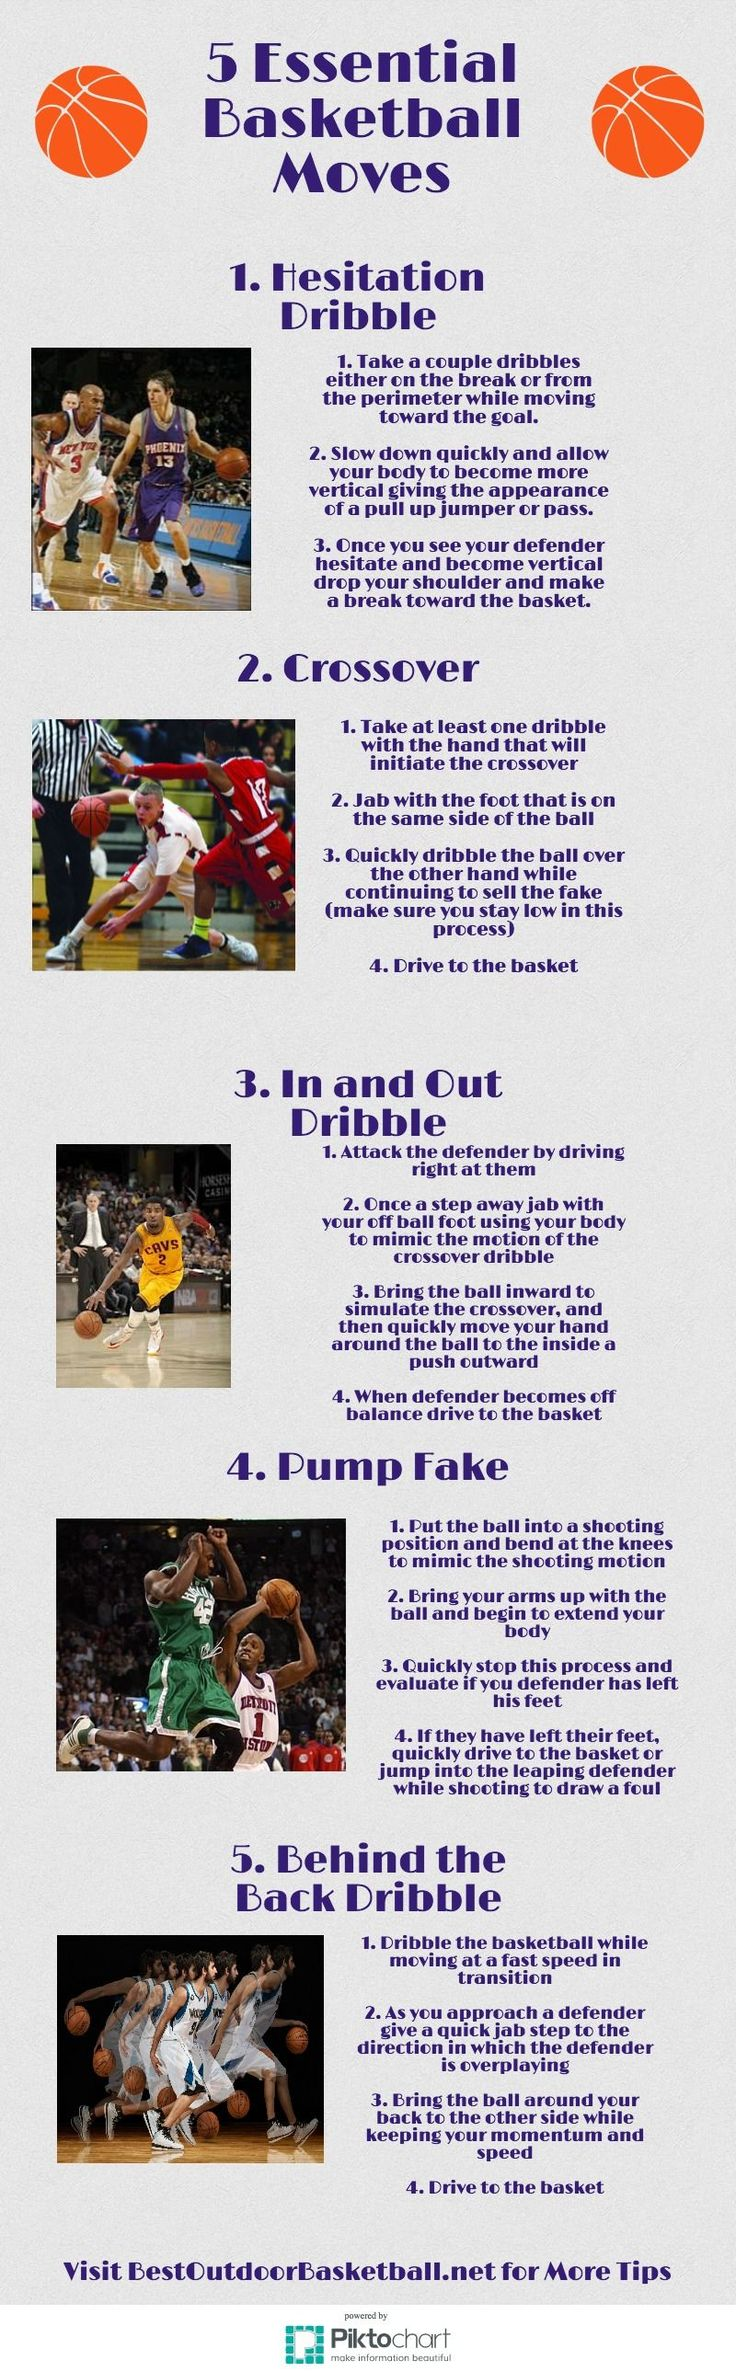 5 Essential Basketball Moves   @Piktochart Infographic